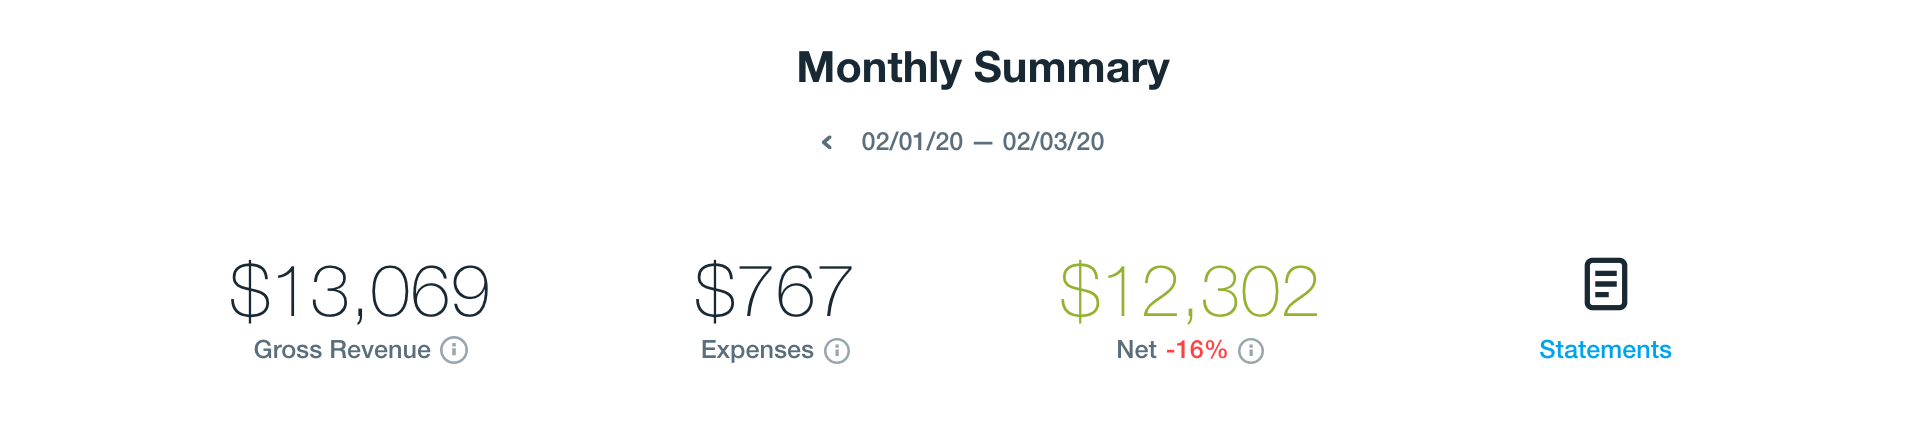 dashboard-monthlysummary.png